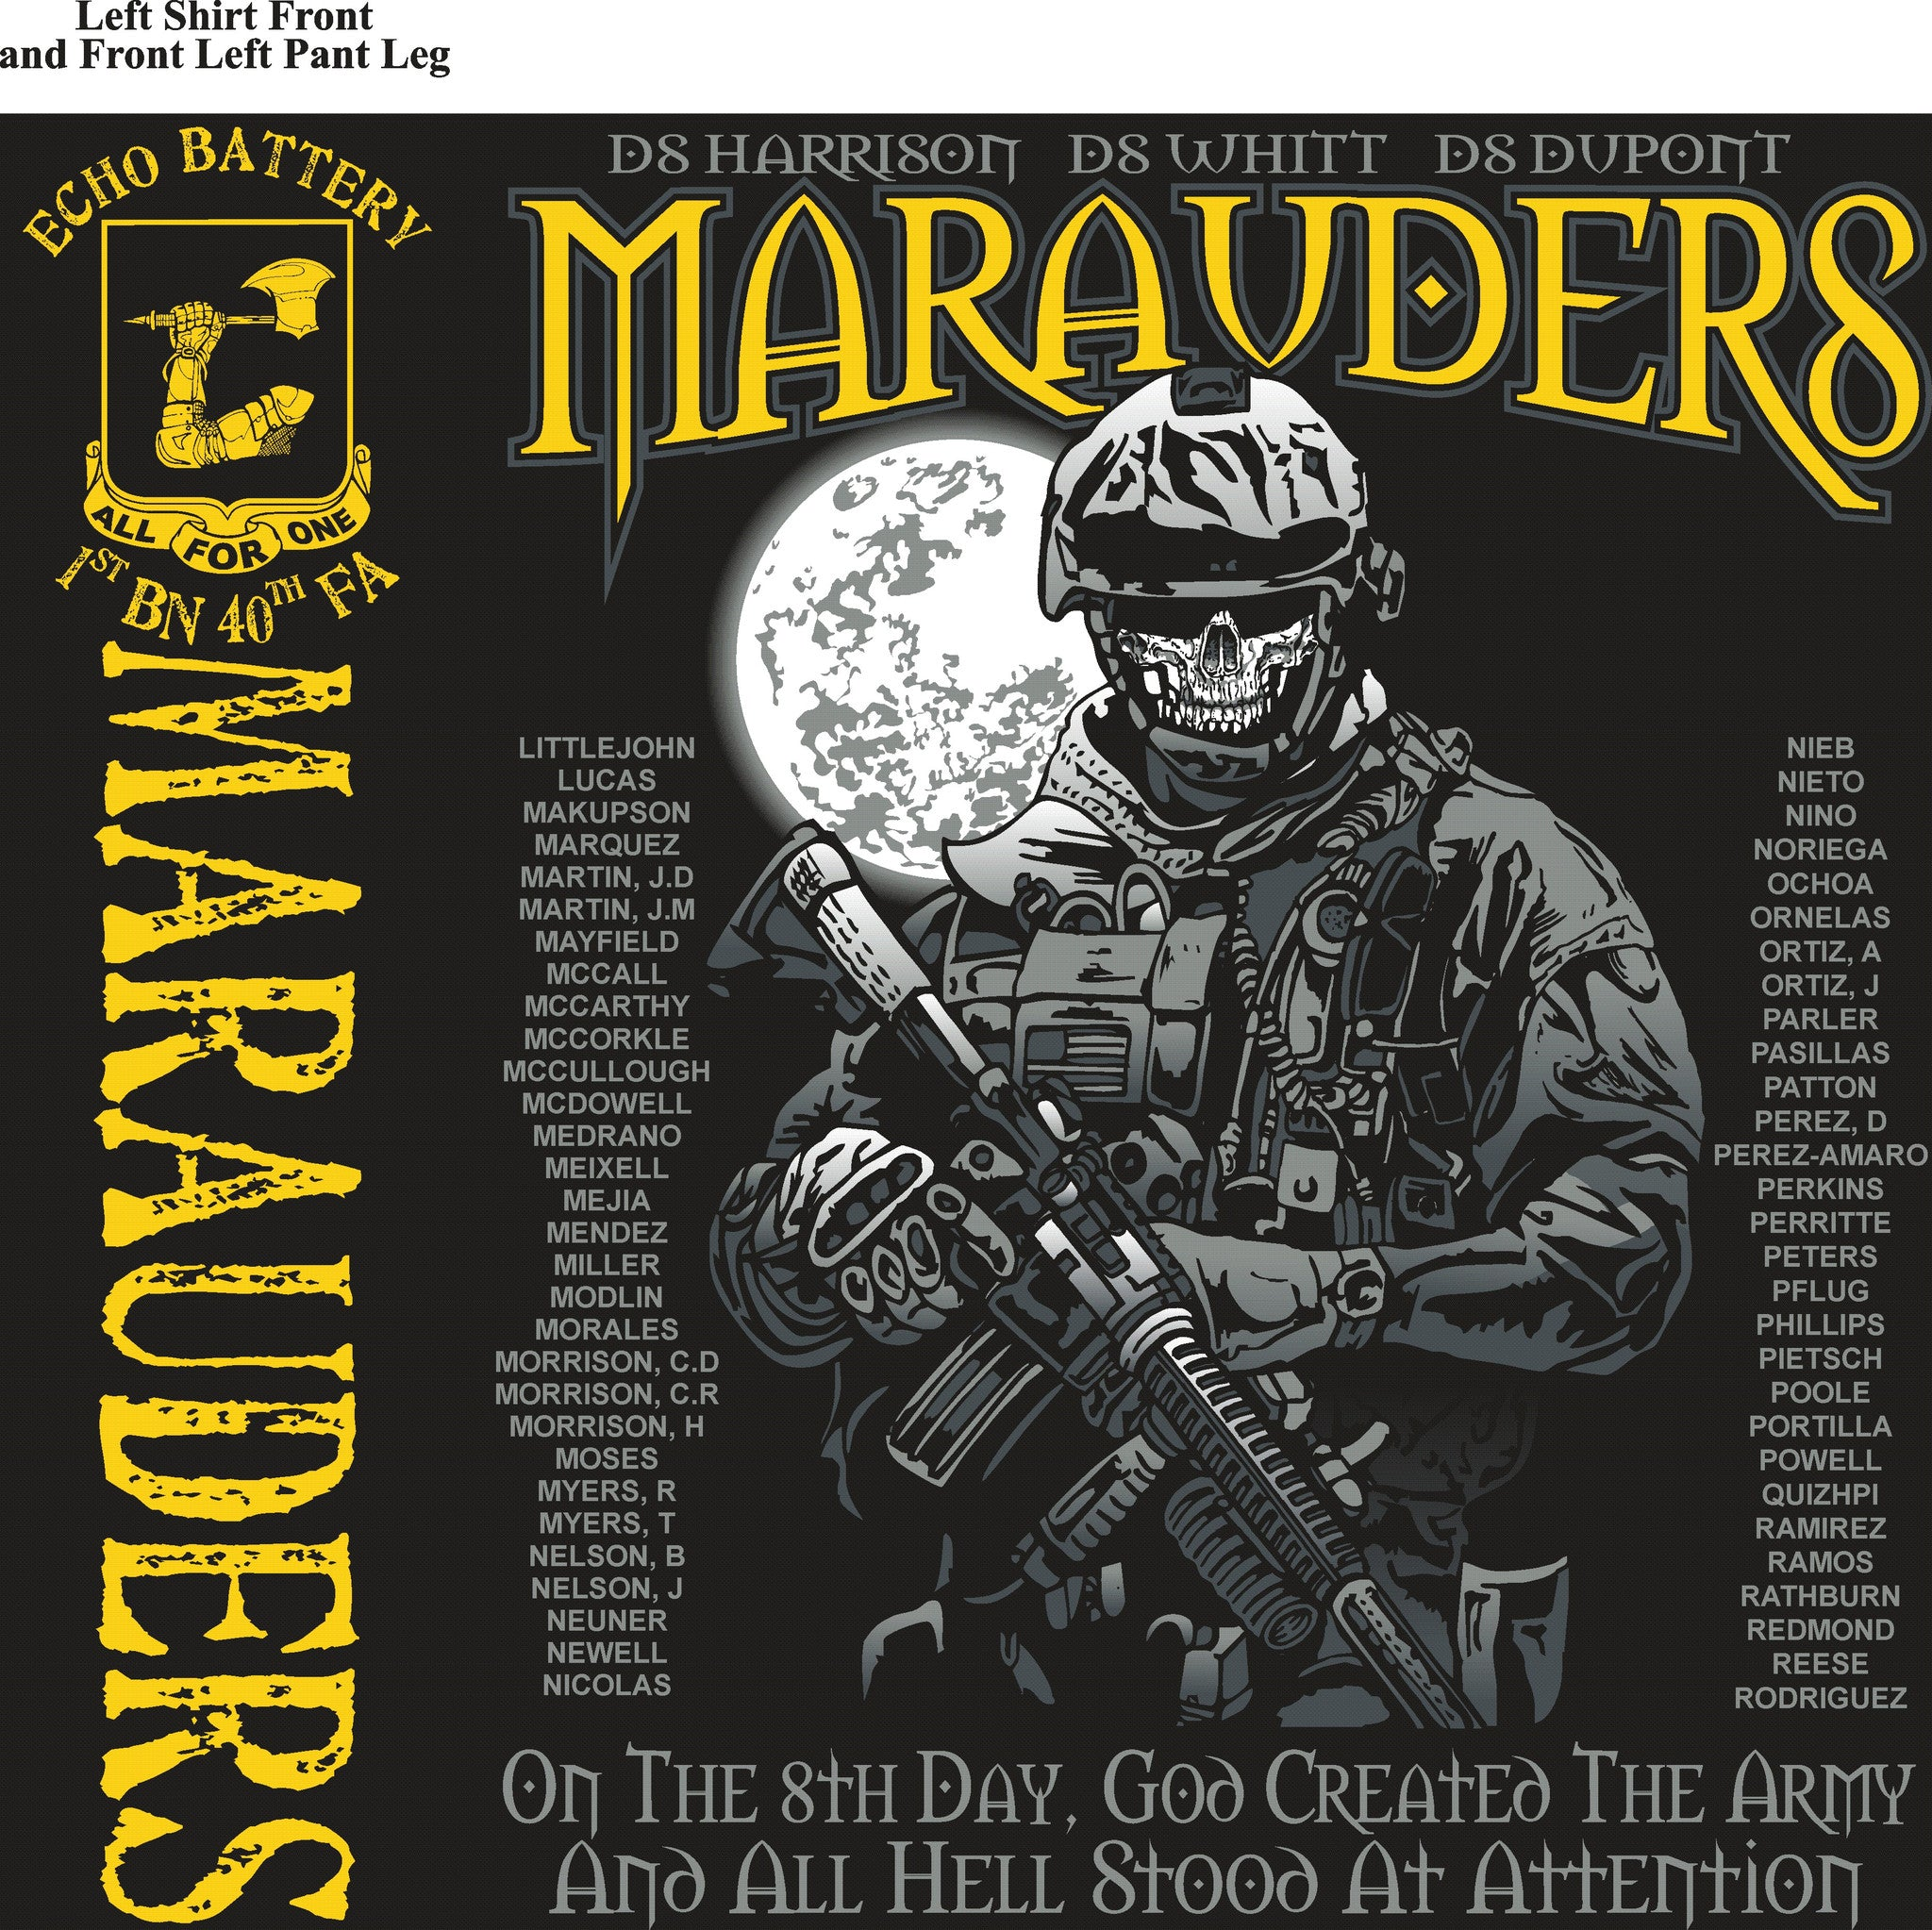 Platoon Shirts Echo 1st 40th MARAUDERS OCT 2015